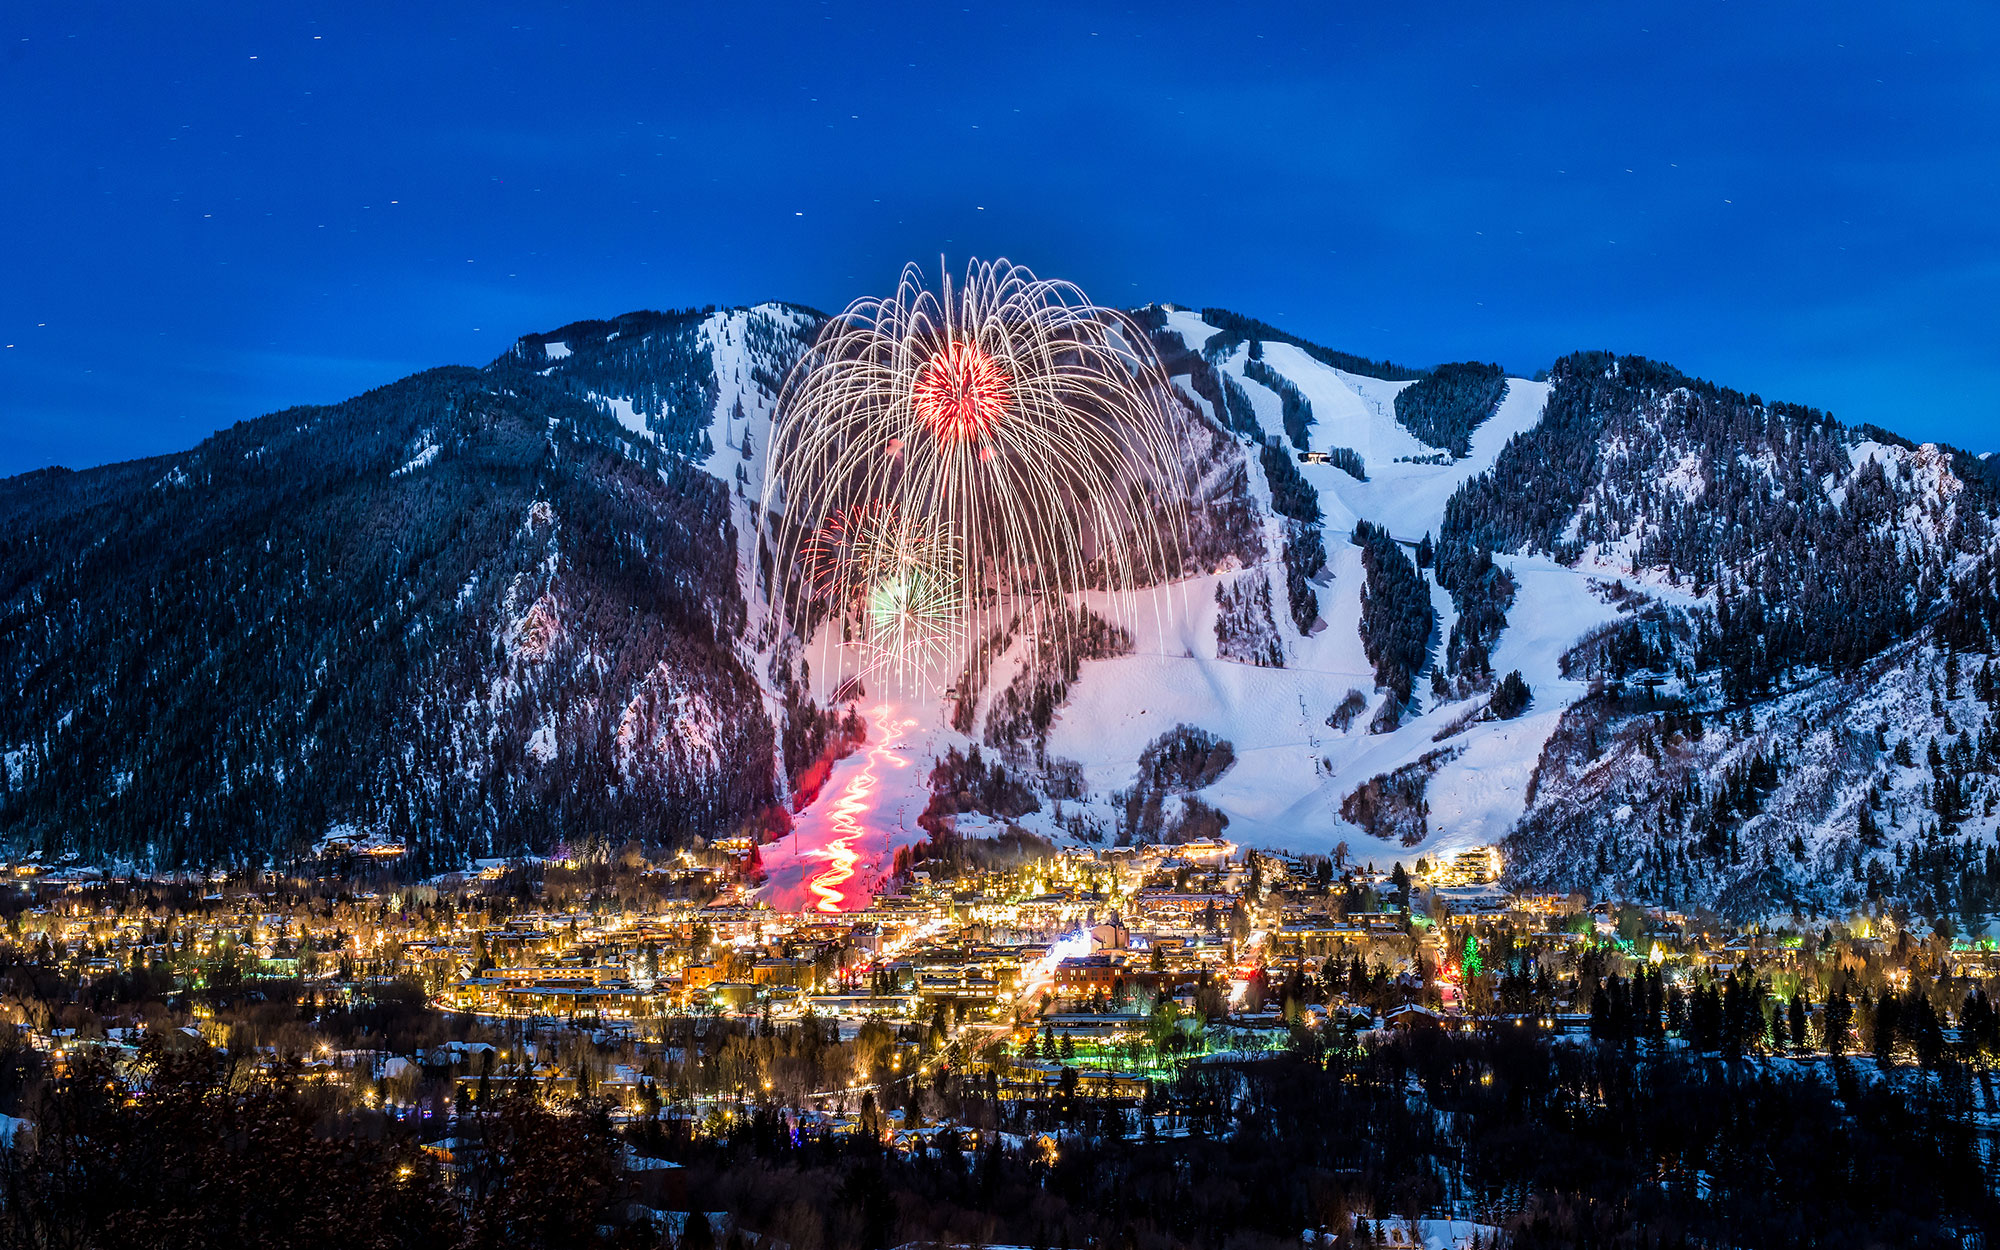 Free Things to do in Aspen for New Year's